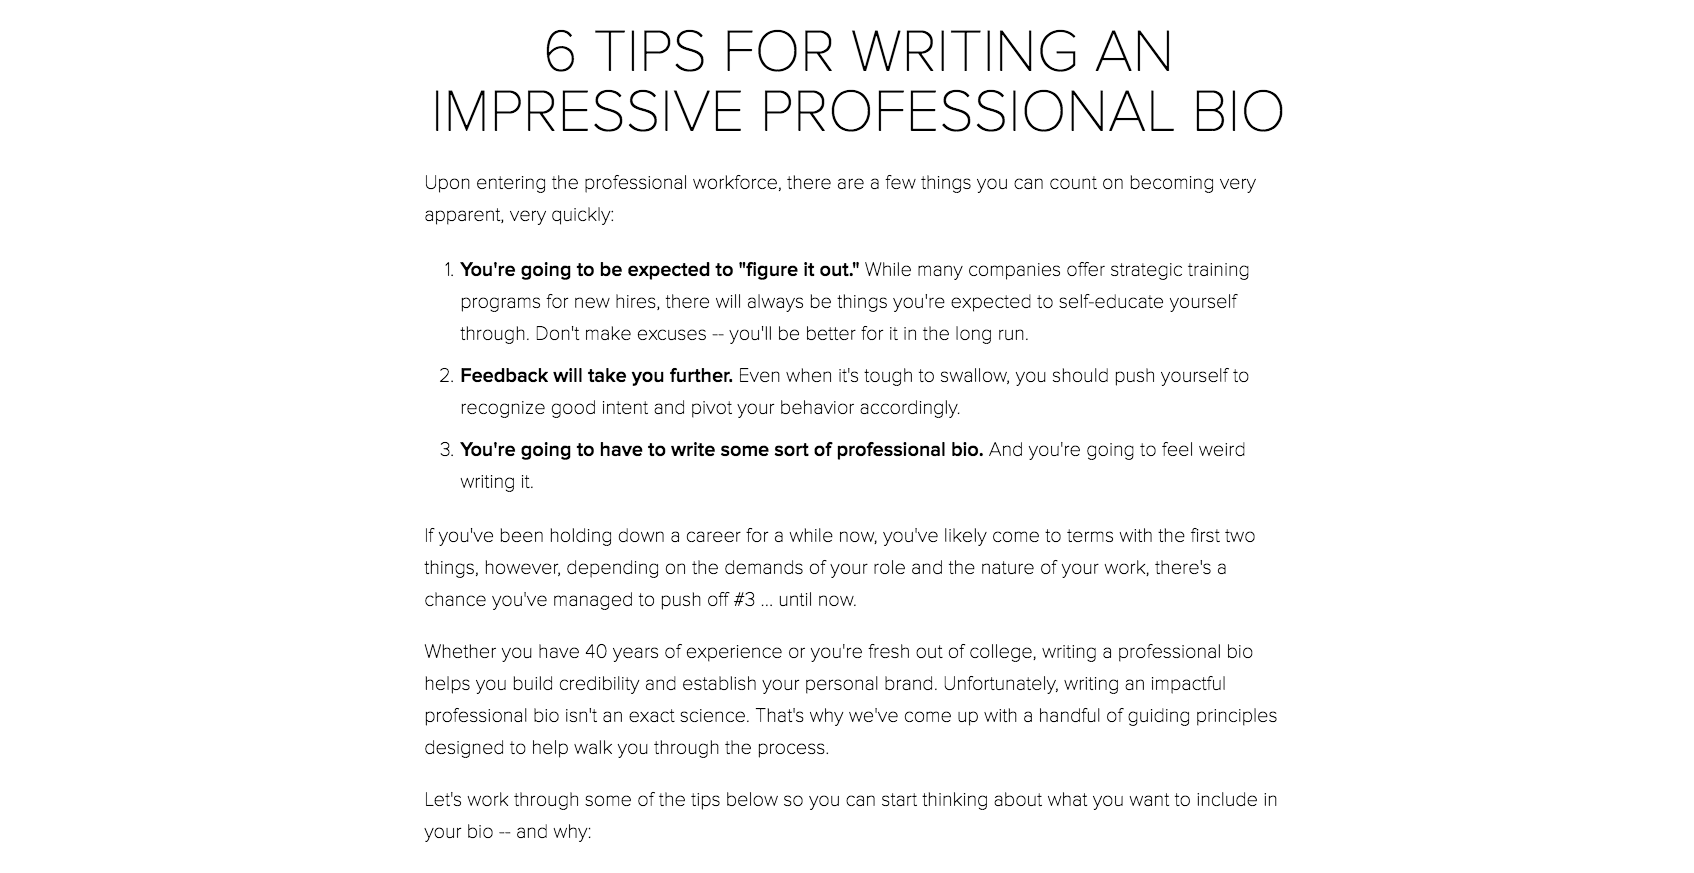 6 Tips for Writing a Professional Bio